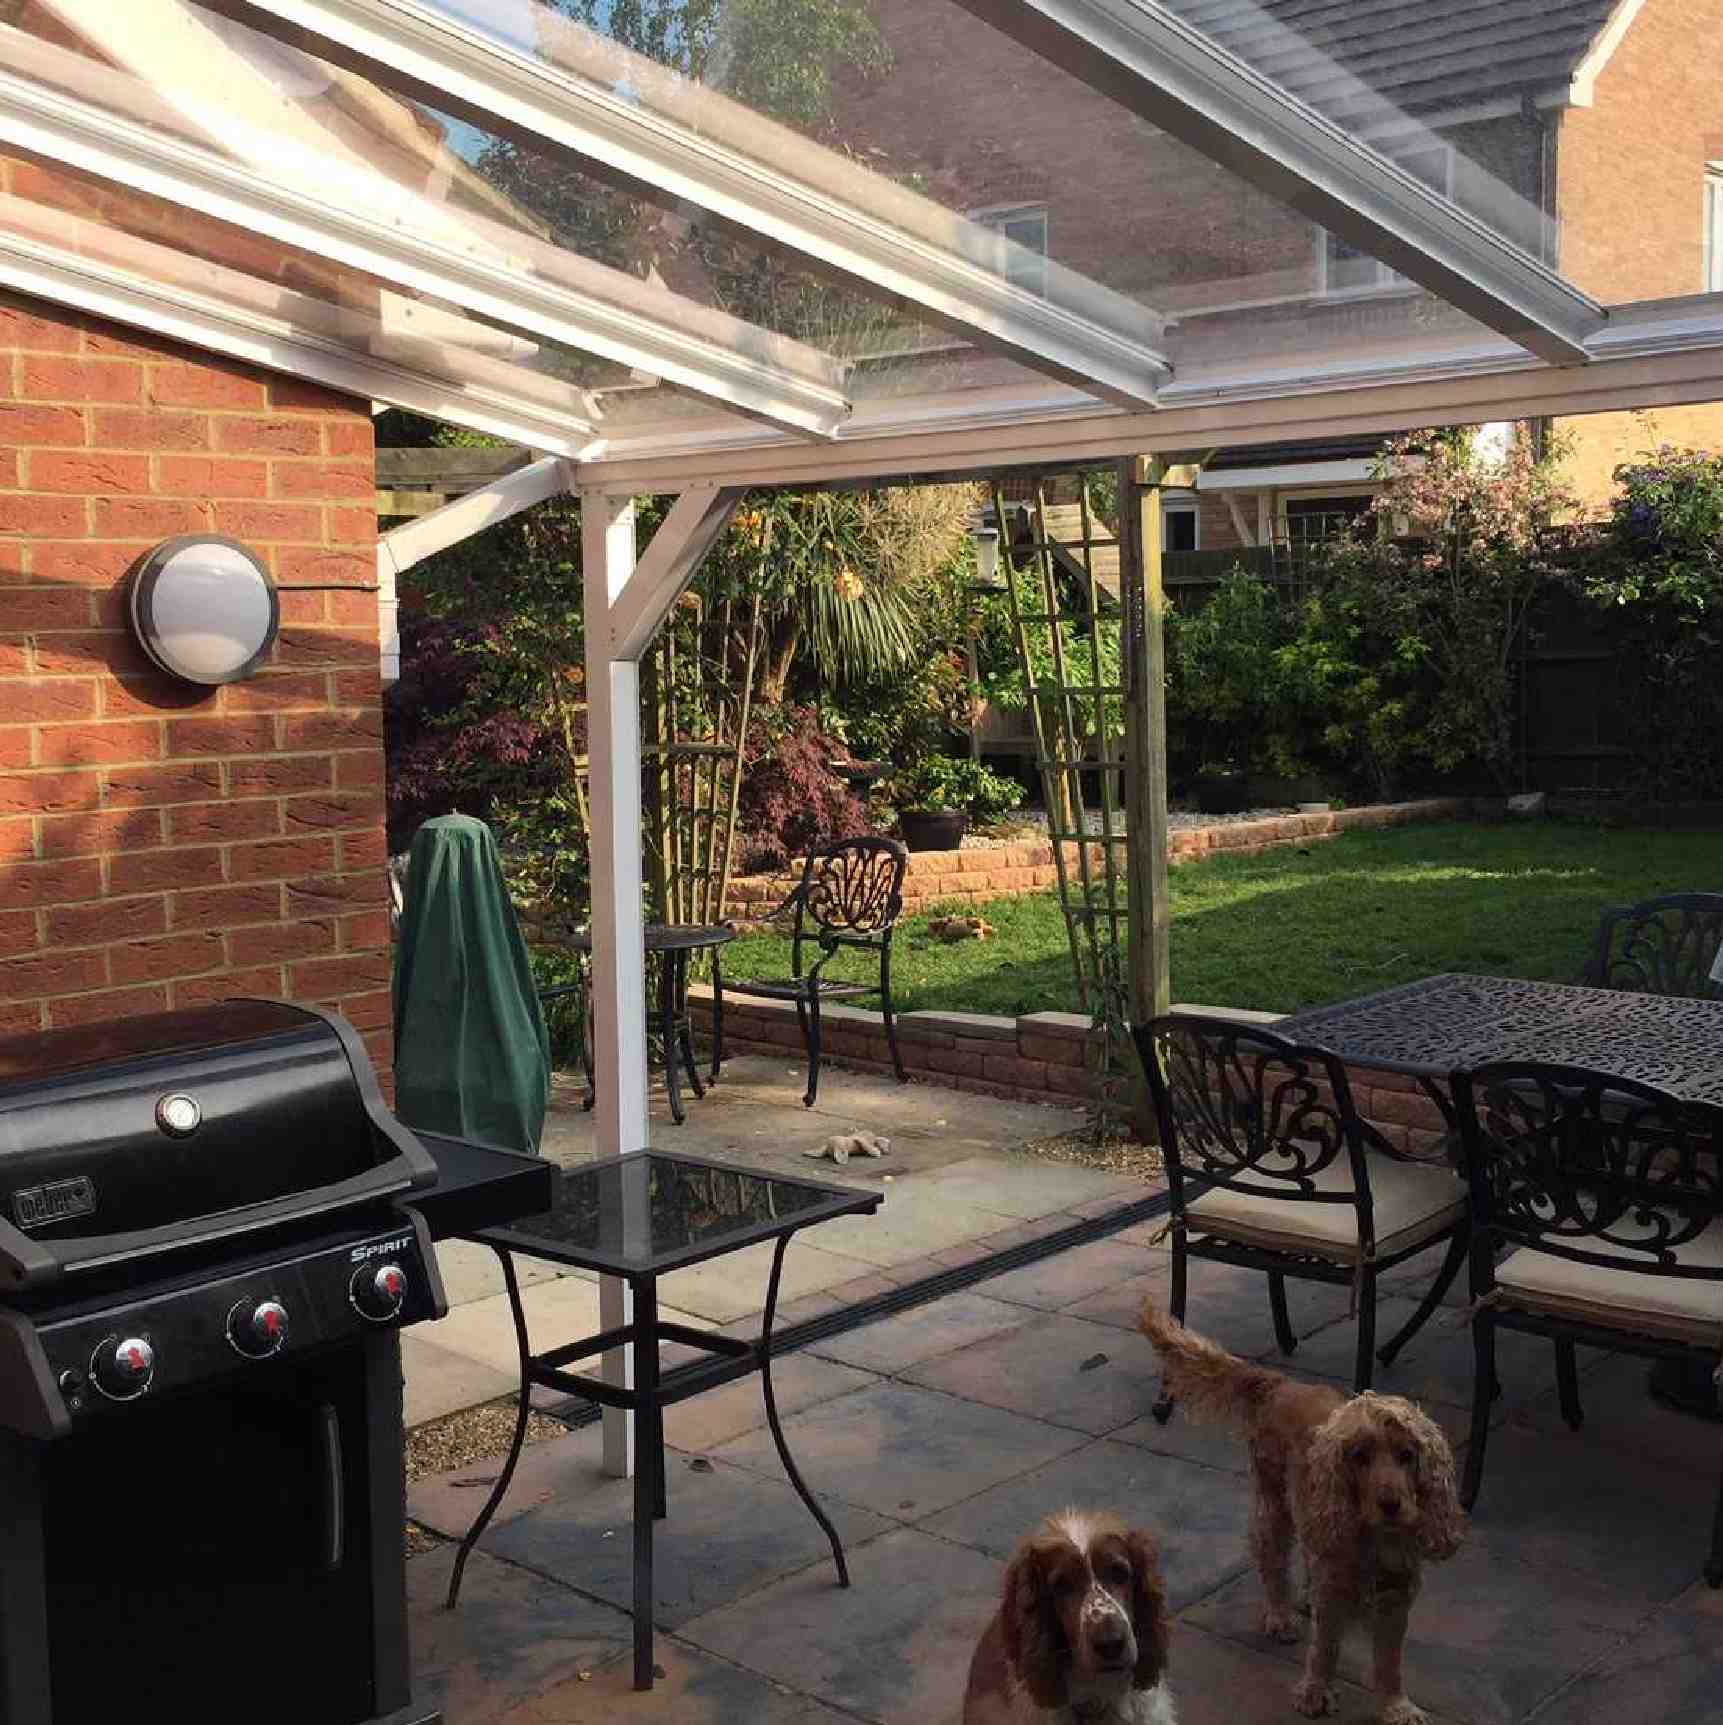 Omega Verandah with 16mm Polycarbonate Glazing - 12.0m (W) x 2.0m (P), (5) Supporting Posts